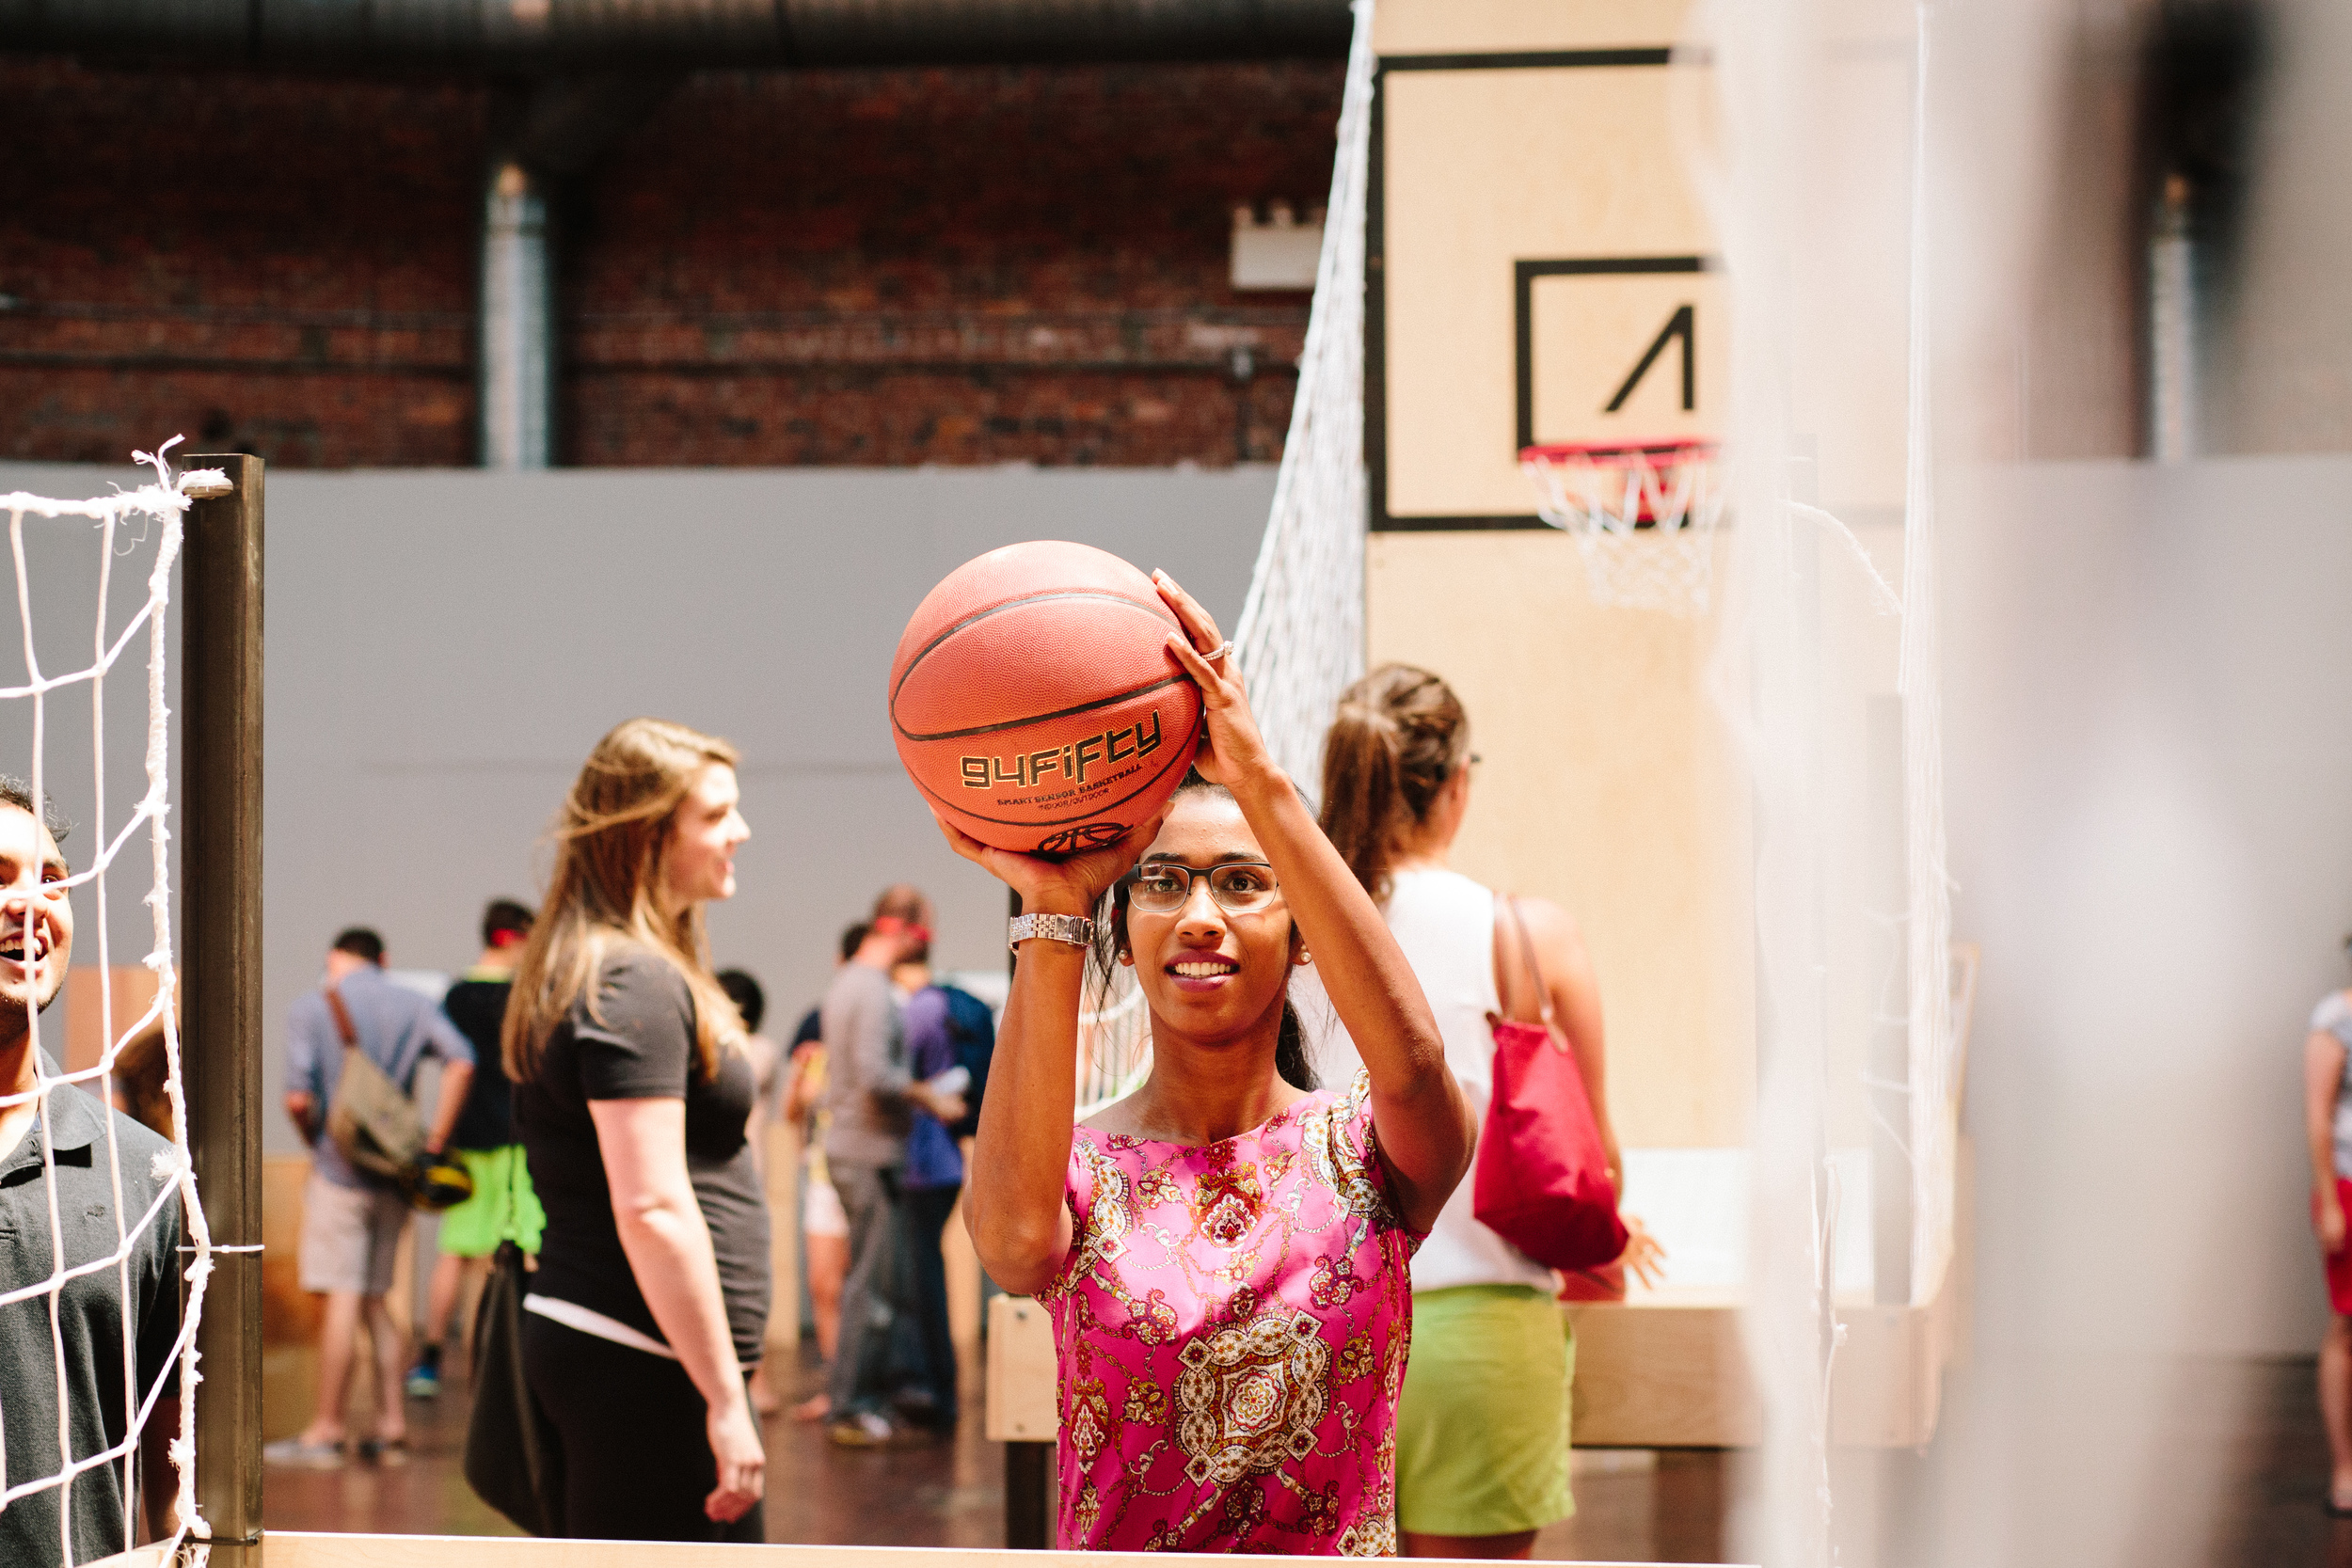 In July 2014, the Glass demo team came to the Cyclorama in Boston's South End, demoing to hundreds of attendees over the course of one weekend. The Glassware 94fifty was on display, featuring smart sensor basketballs paired with Glass devices.